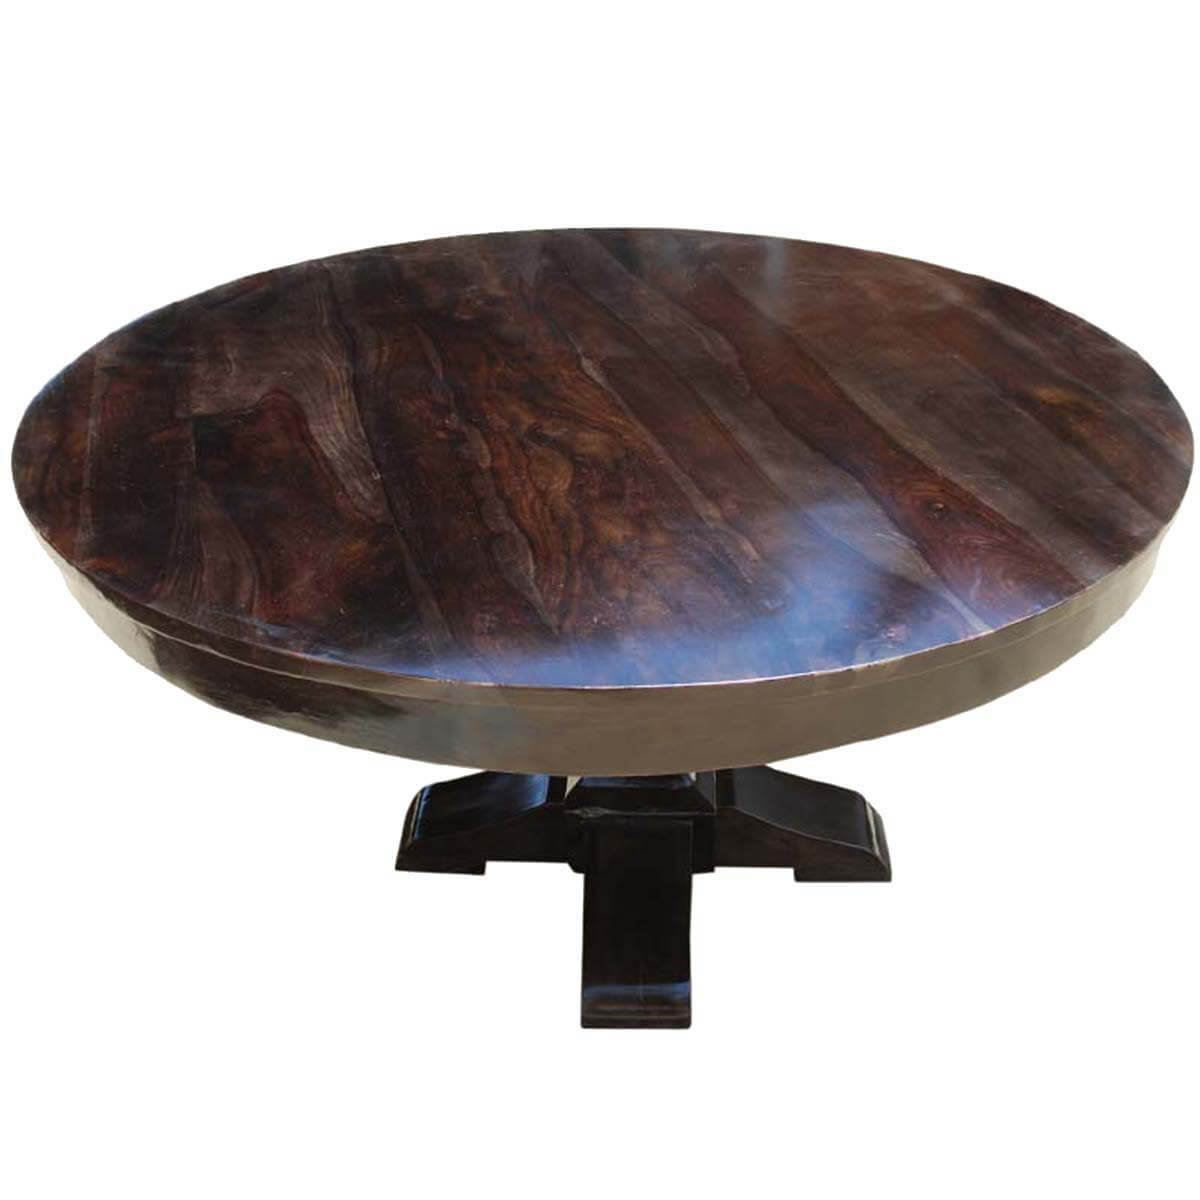 round rustic solid wood dining table pedestal style. Black Bedroom Furniture Sets. Home Design Ideas